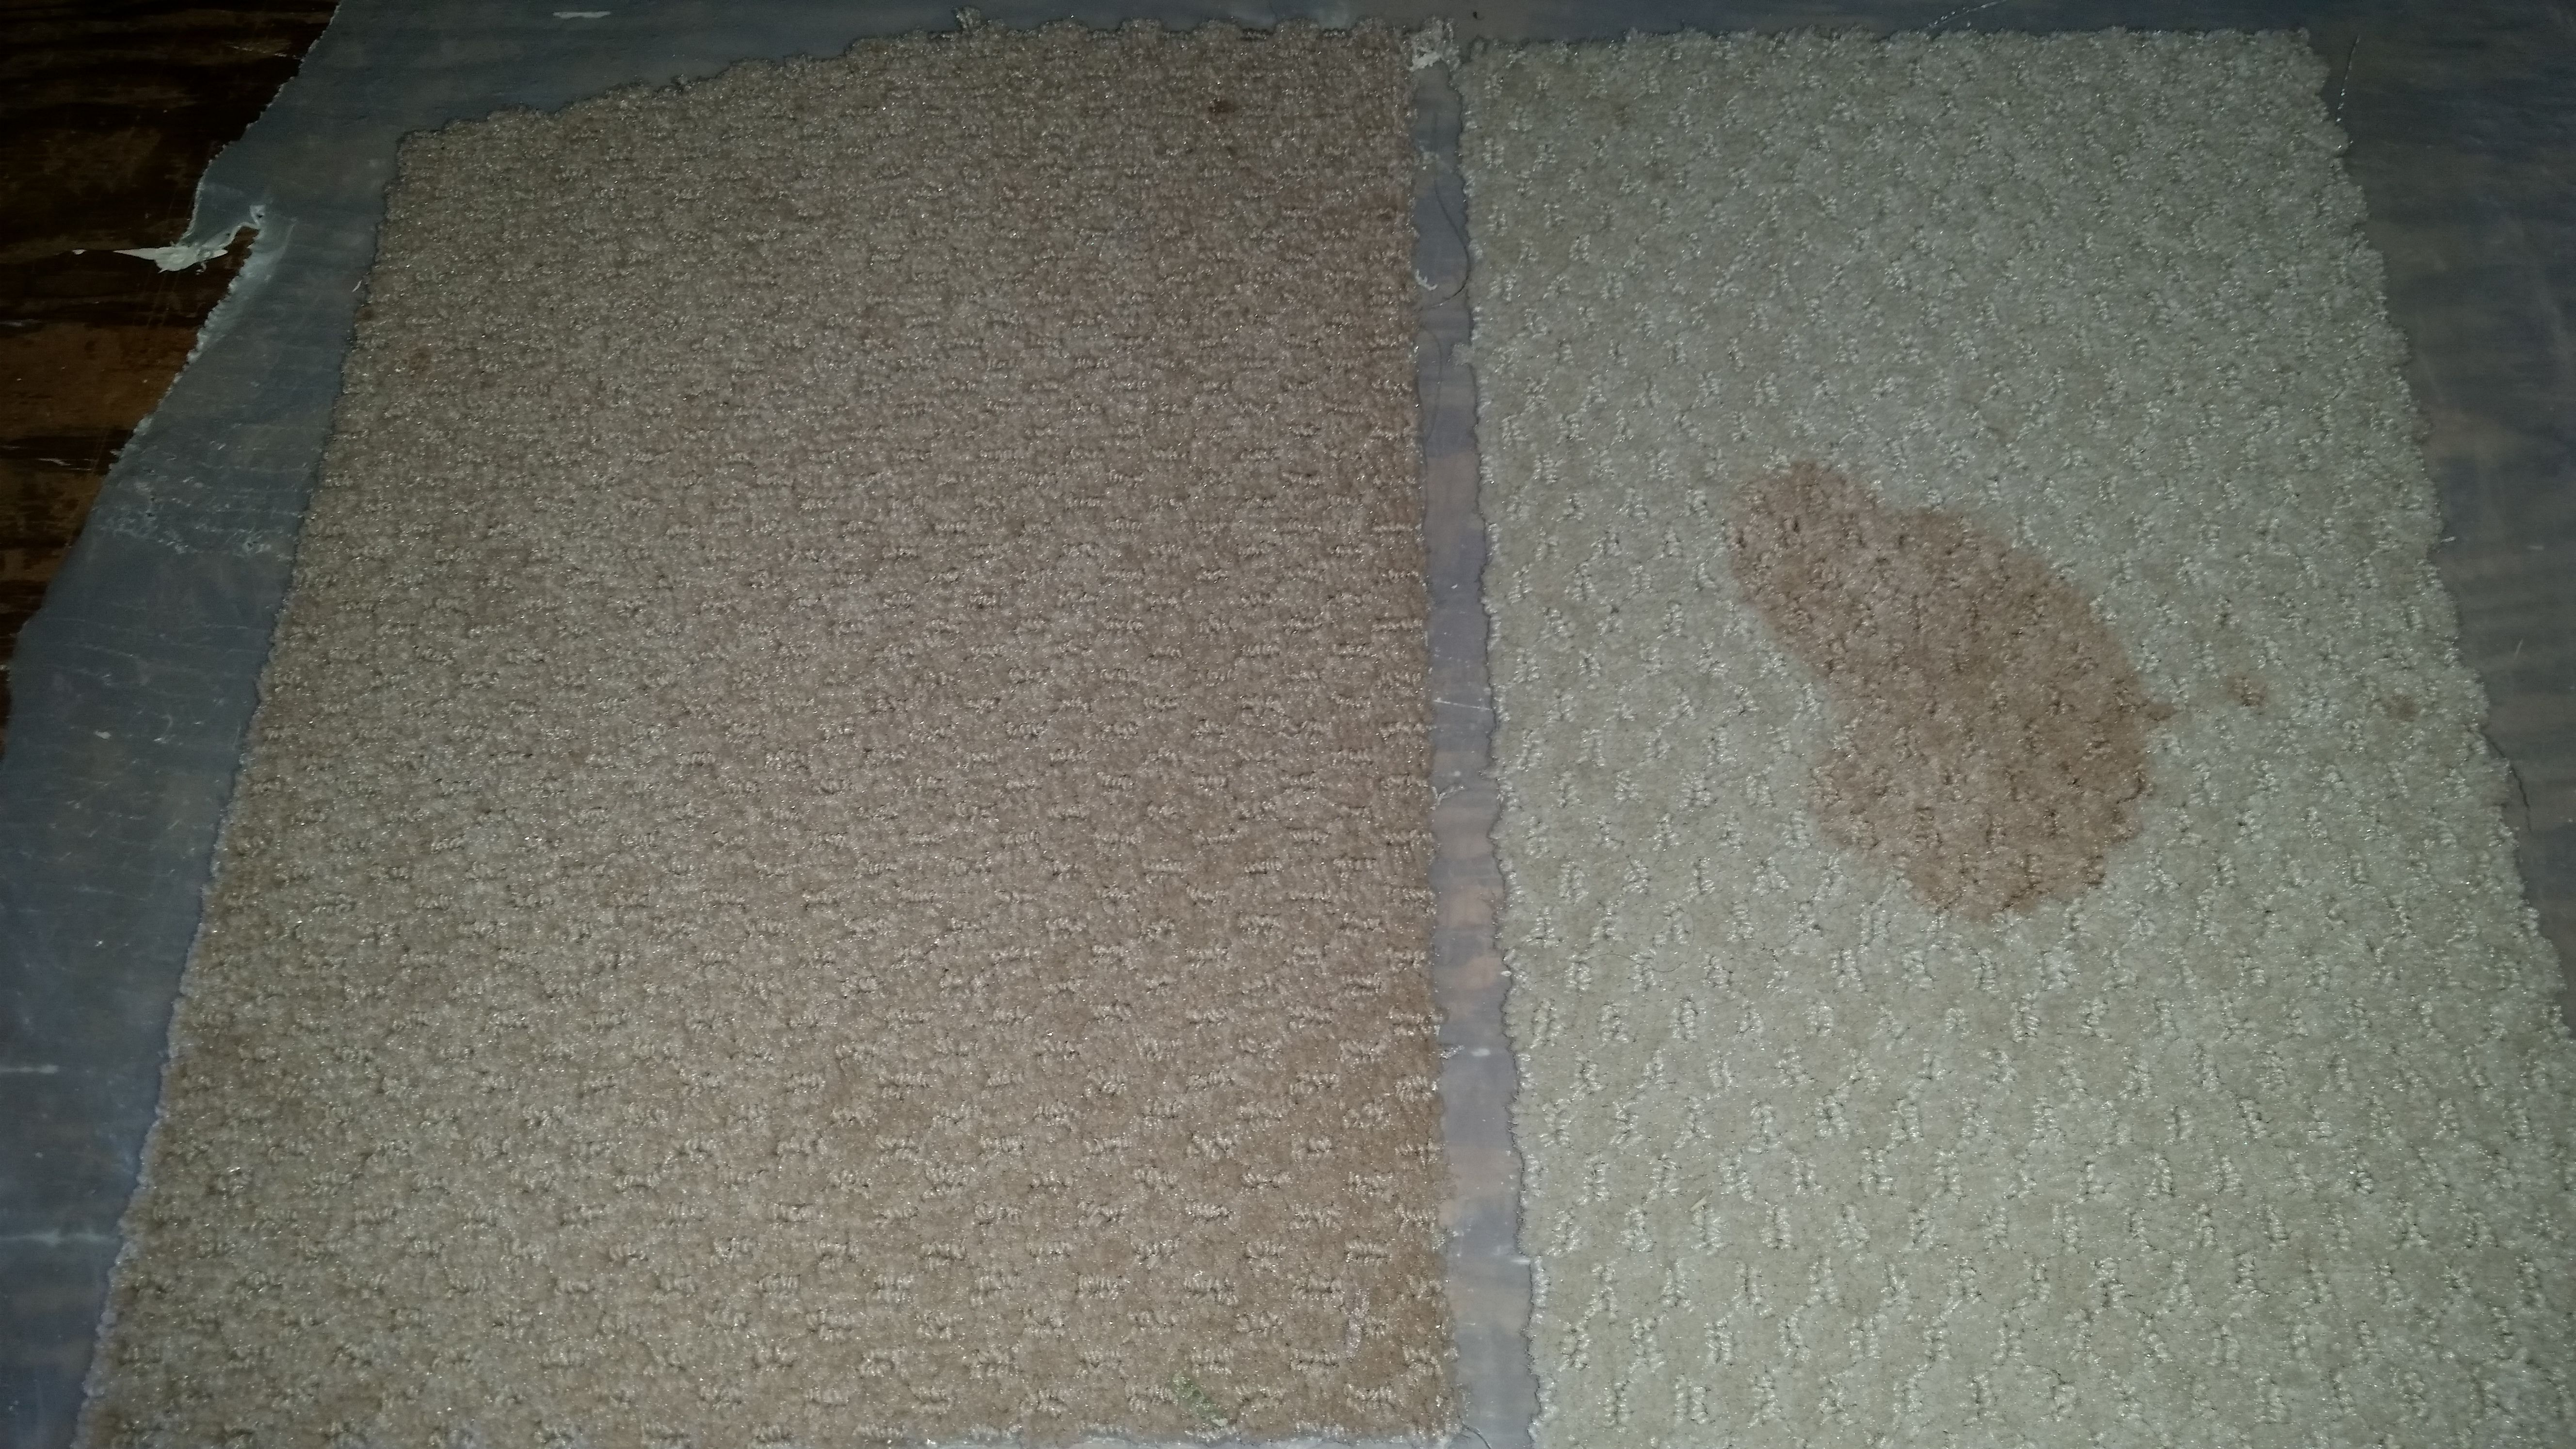 Cranberry juice stain on polyester and SmartStrand triexta carpets